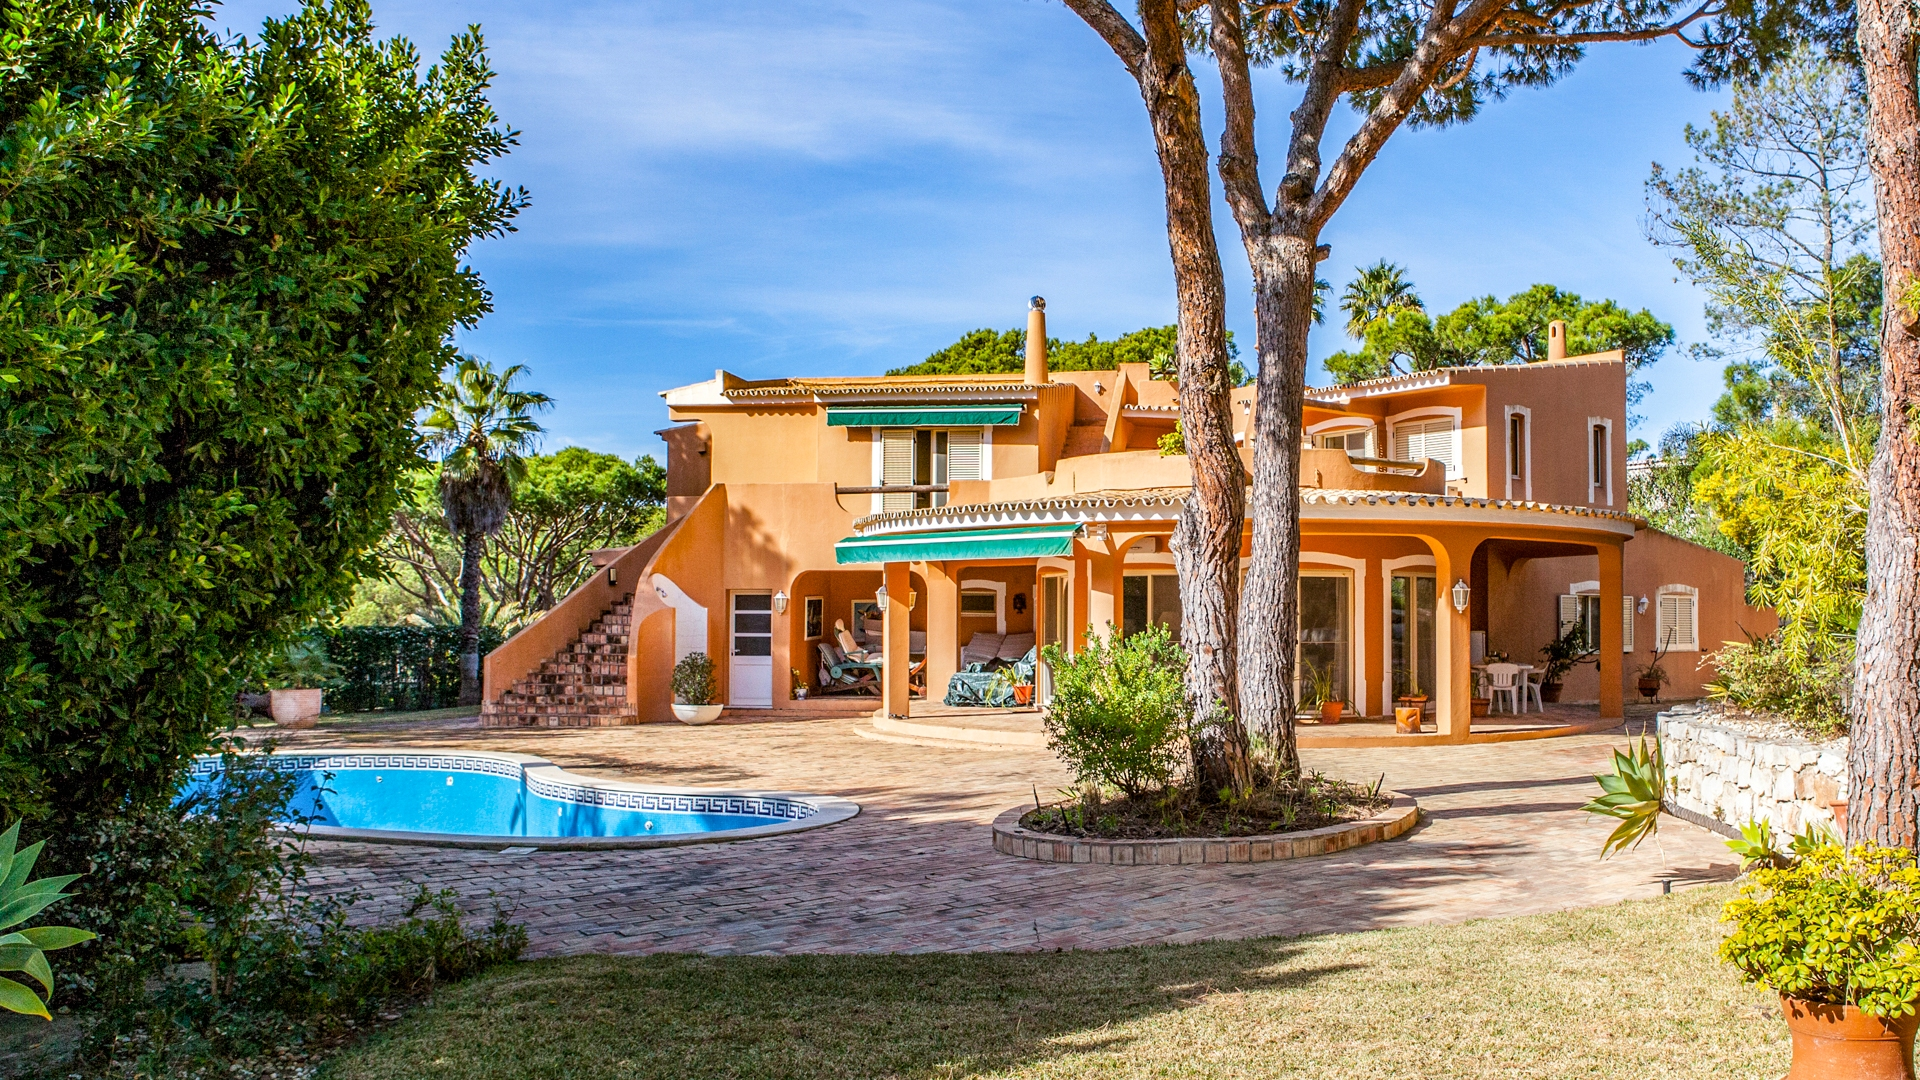 Fully refurbished Moorish style property in Quinta do Lago | PRB221 4 bedroom moorish style villa with pool in Quinta do Lago, Golden Triangle. It is located close to the beach, amenities and golf. It has also a beautiful landscaped garden.